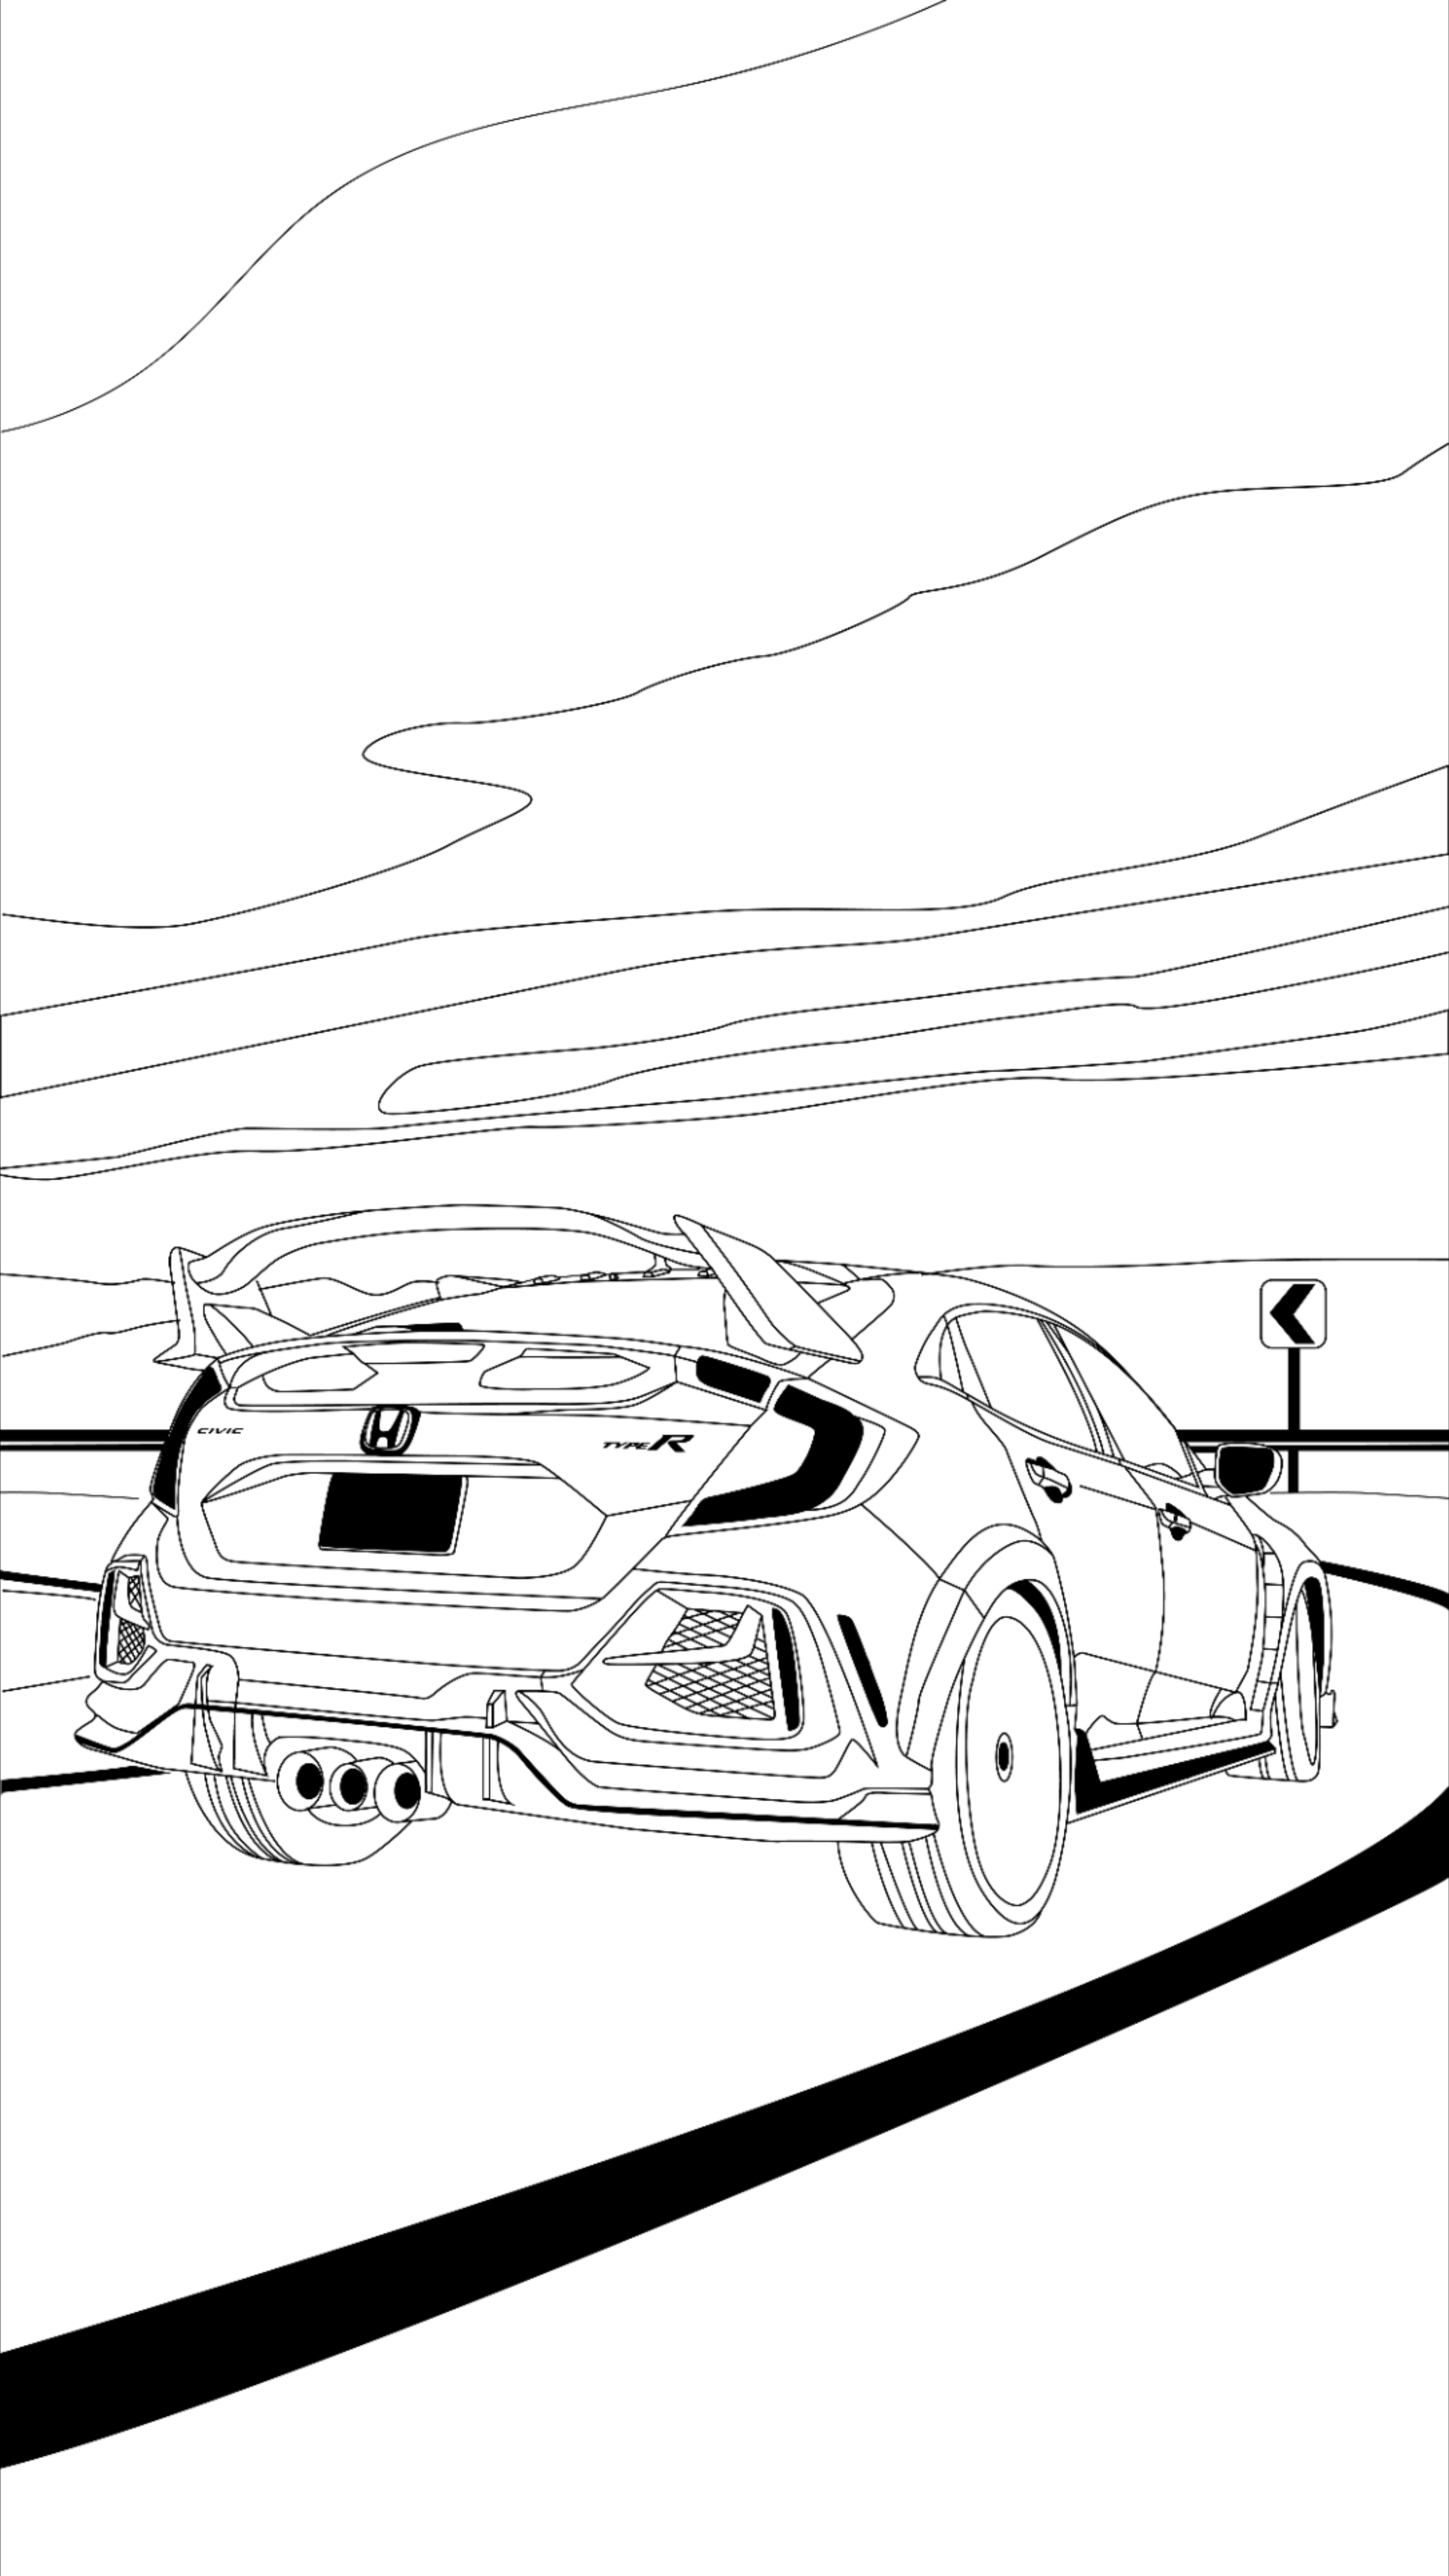 Honda Civic Coloring Pages : honda, civic, coloring, pages, Honda, Coloring, Imagination, Drawing,, Honda,